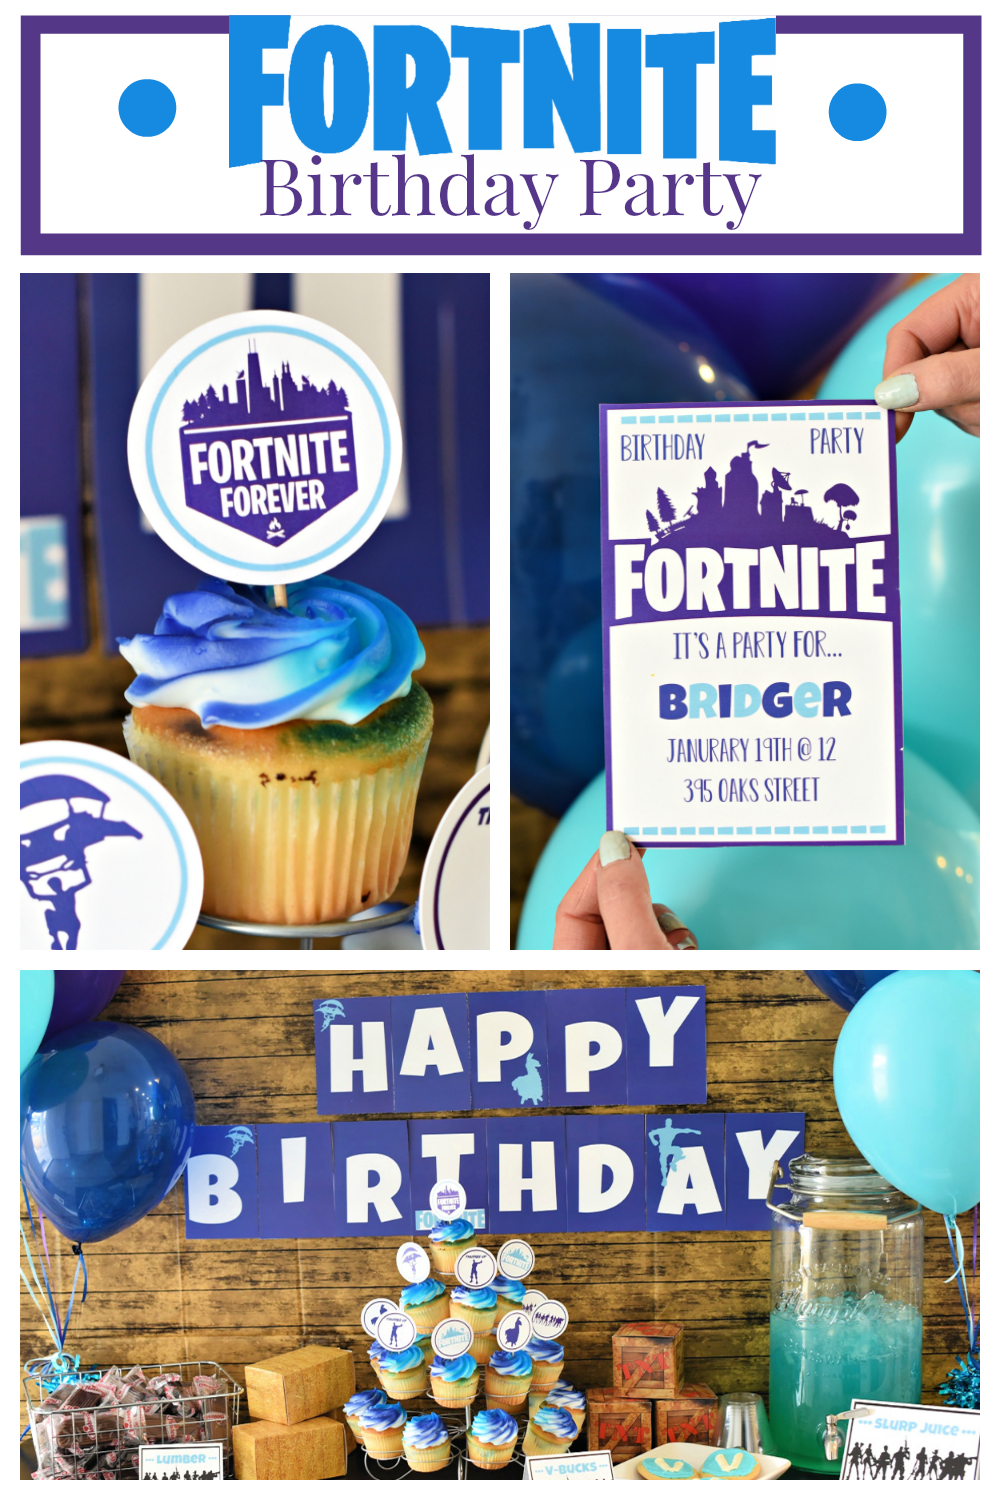 Throw your own Fortnite Birthday Party. We have everything you will need to throw your own Fortnite party, from invitations to a fun Fortnite party game...we have you covered. This is such a fun and simple birthday party, you'll love it. #Fortniteparty #fortnitebirthdayparty #birthdayparty #birthday